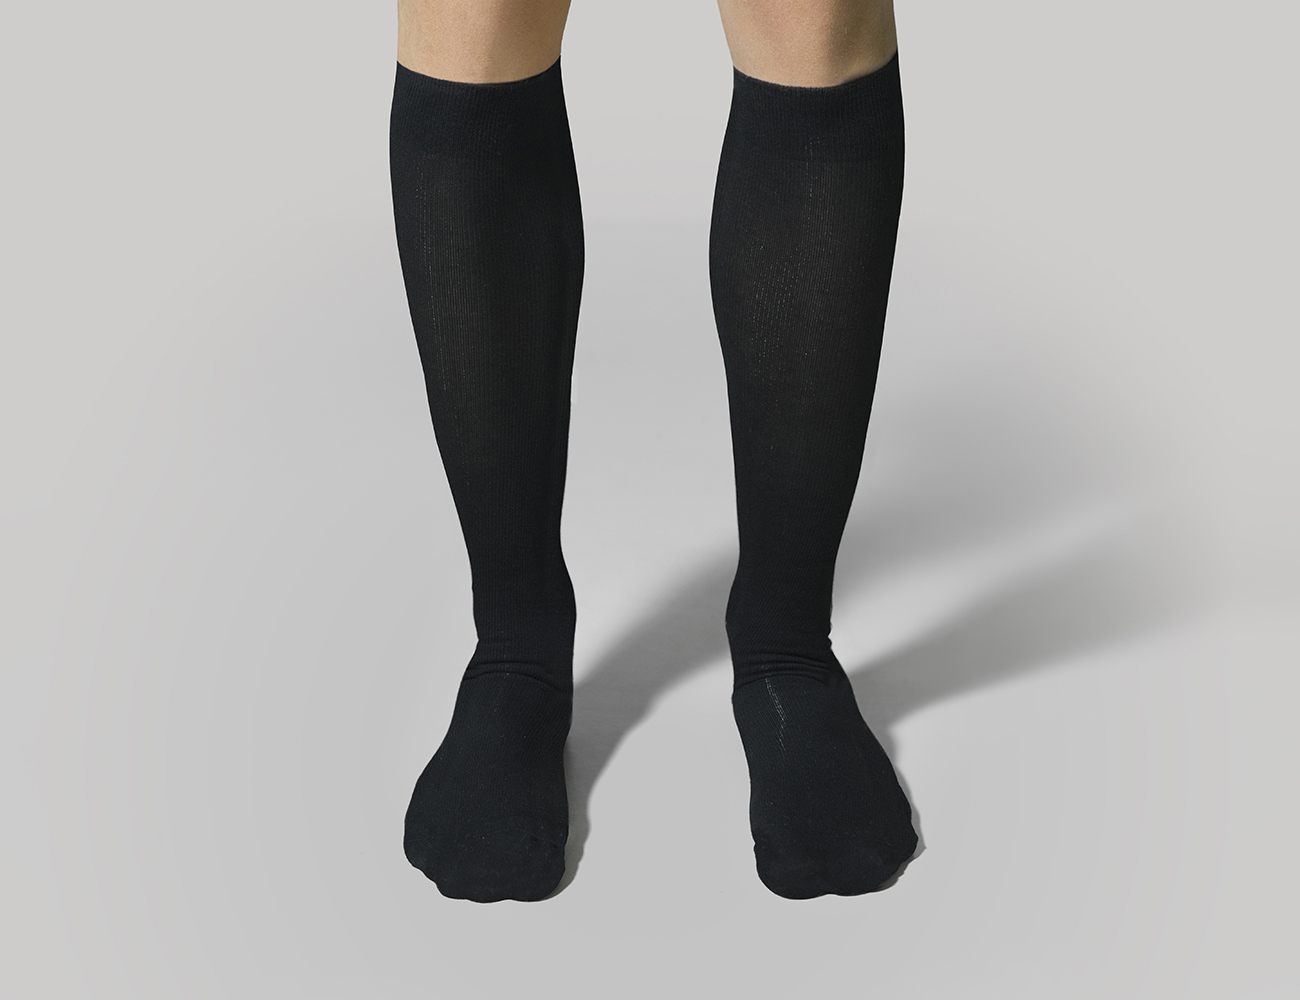 Graduated Compression Knee-High Cotton Socks for Men